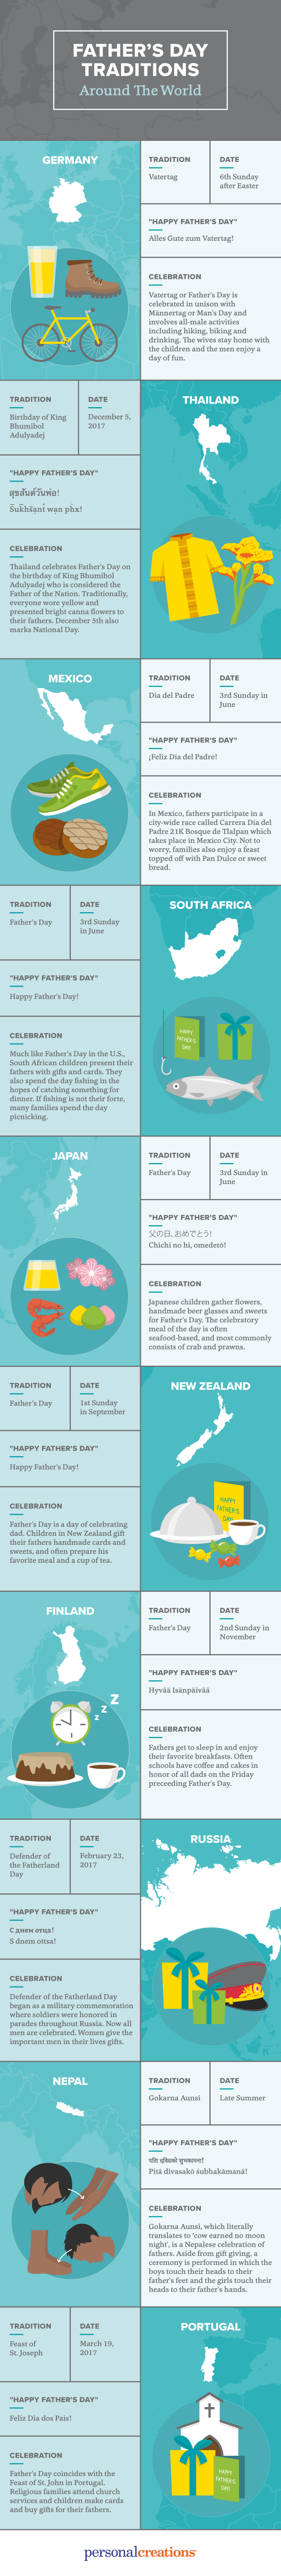 fathers day traditions around the world gift ideas